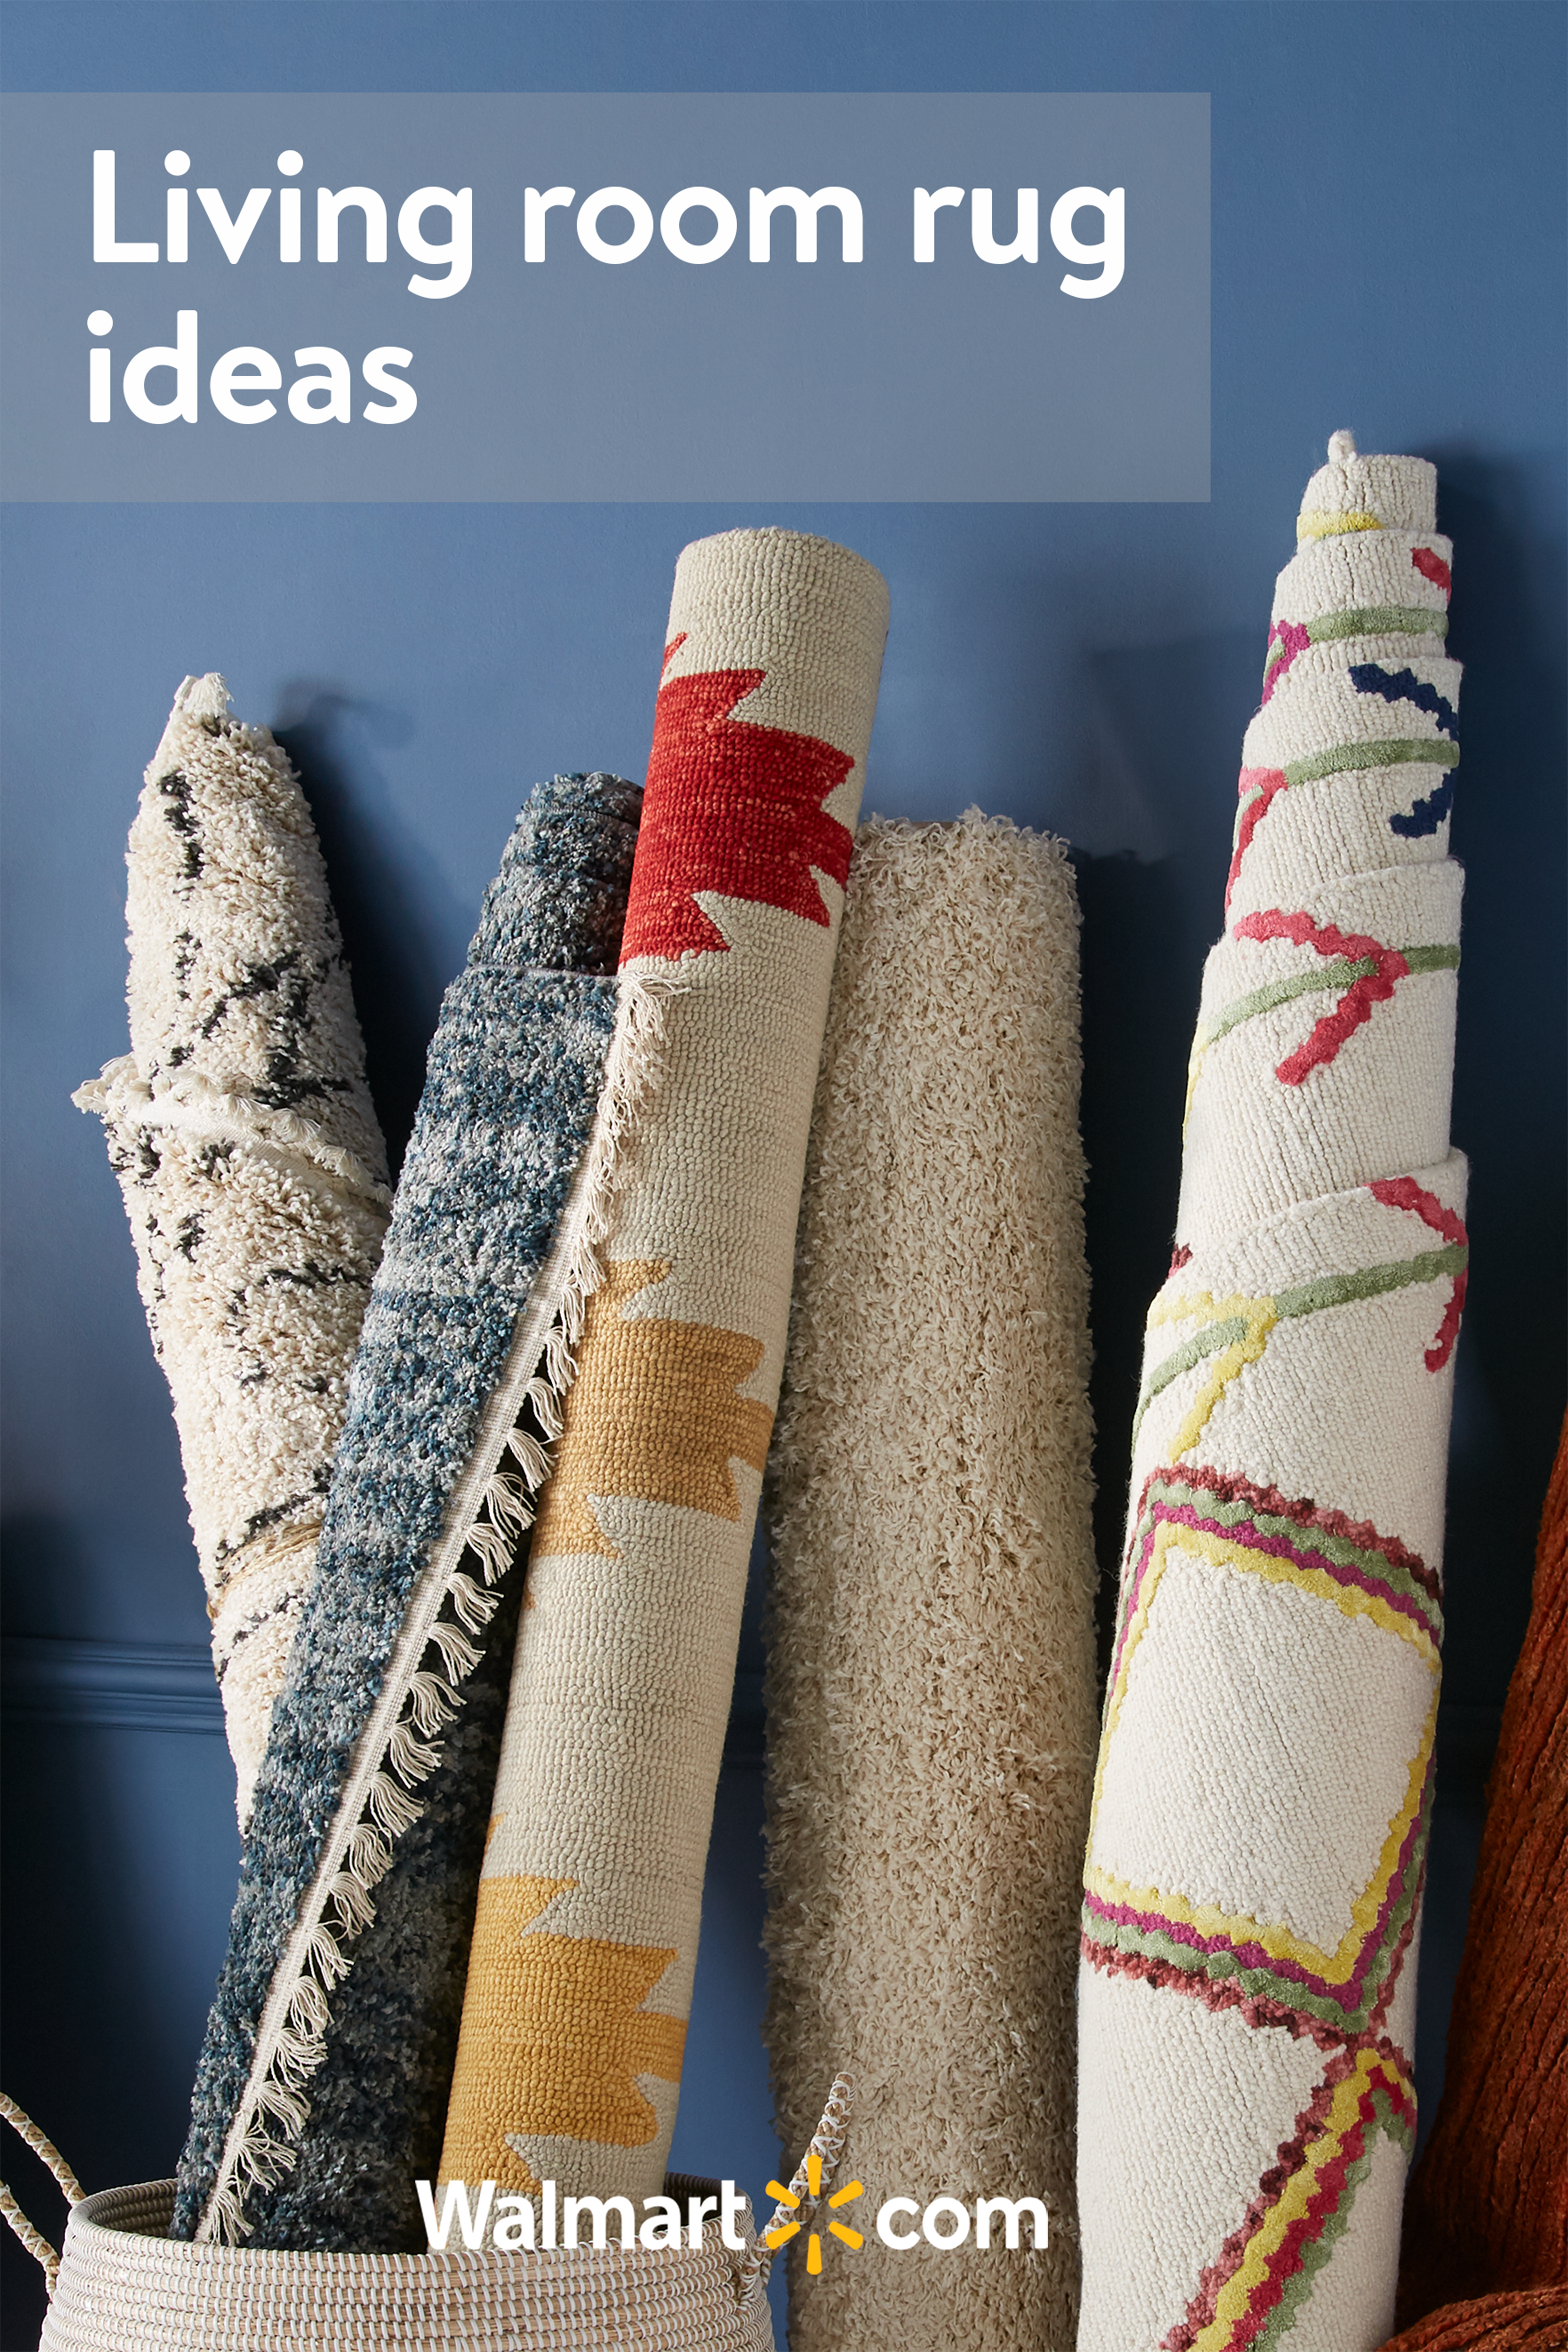 Roll Out A New Look With Stylish Rugs From Walmart Complete The